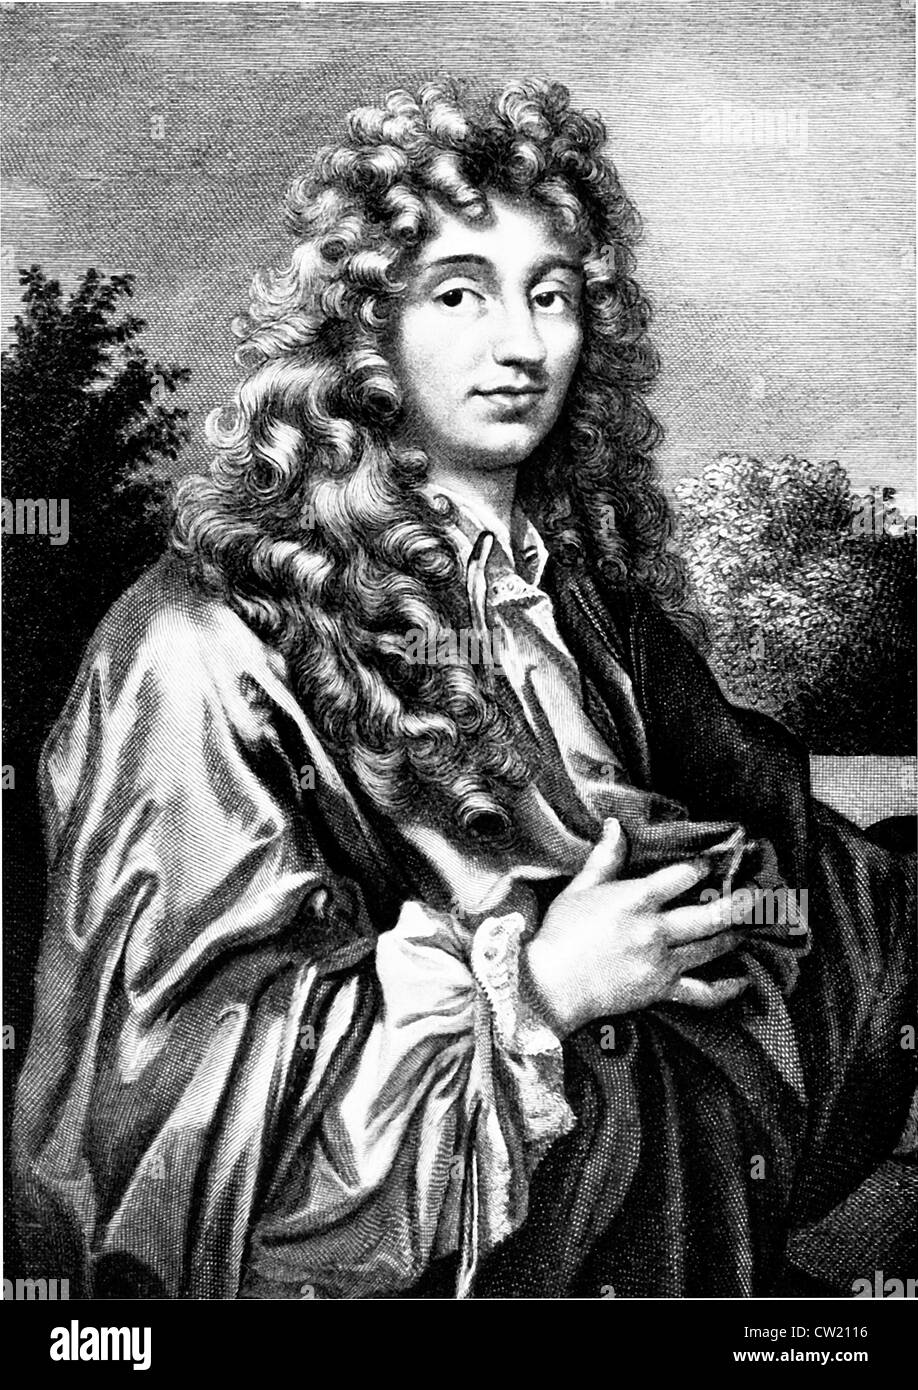 Christian Huygens, Christiaan Huygens - Stock Image